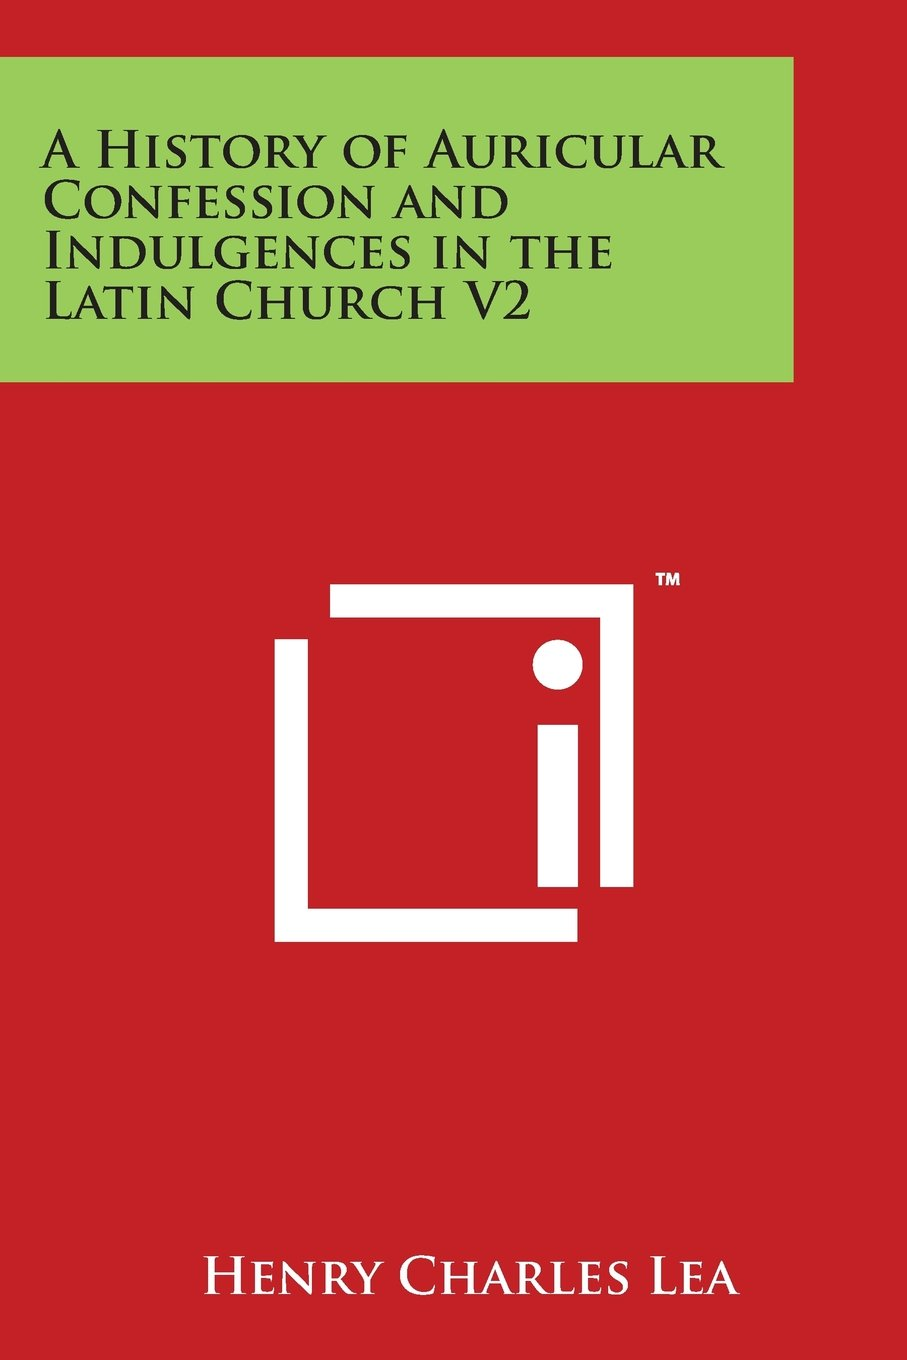 A History of Auricular Confession and Indulgences in the Latin Church V2 pdf